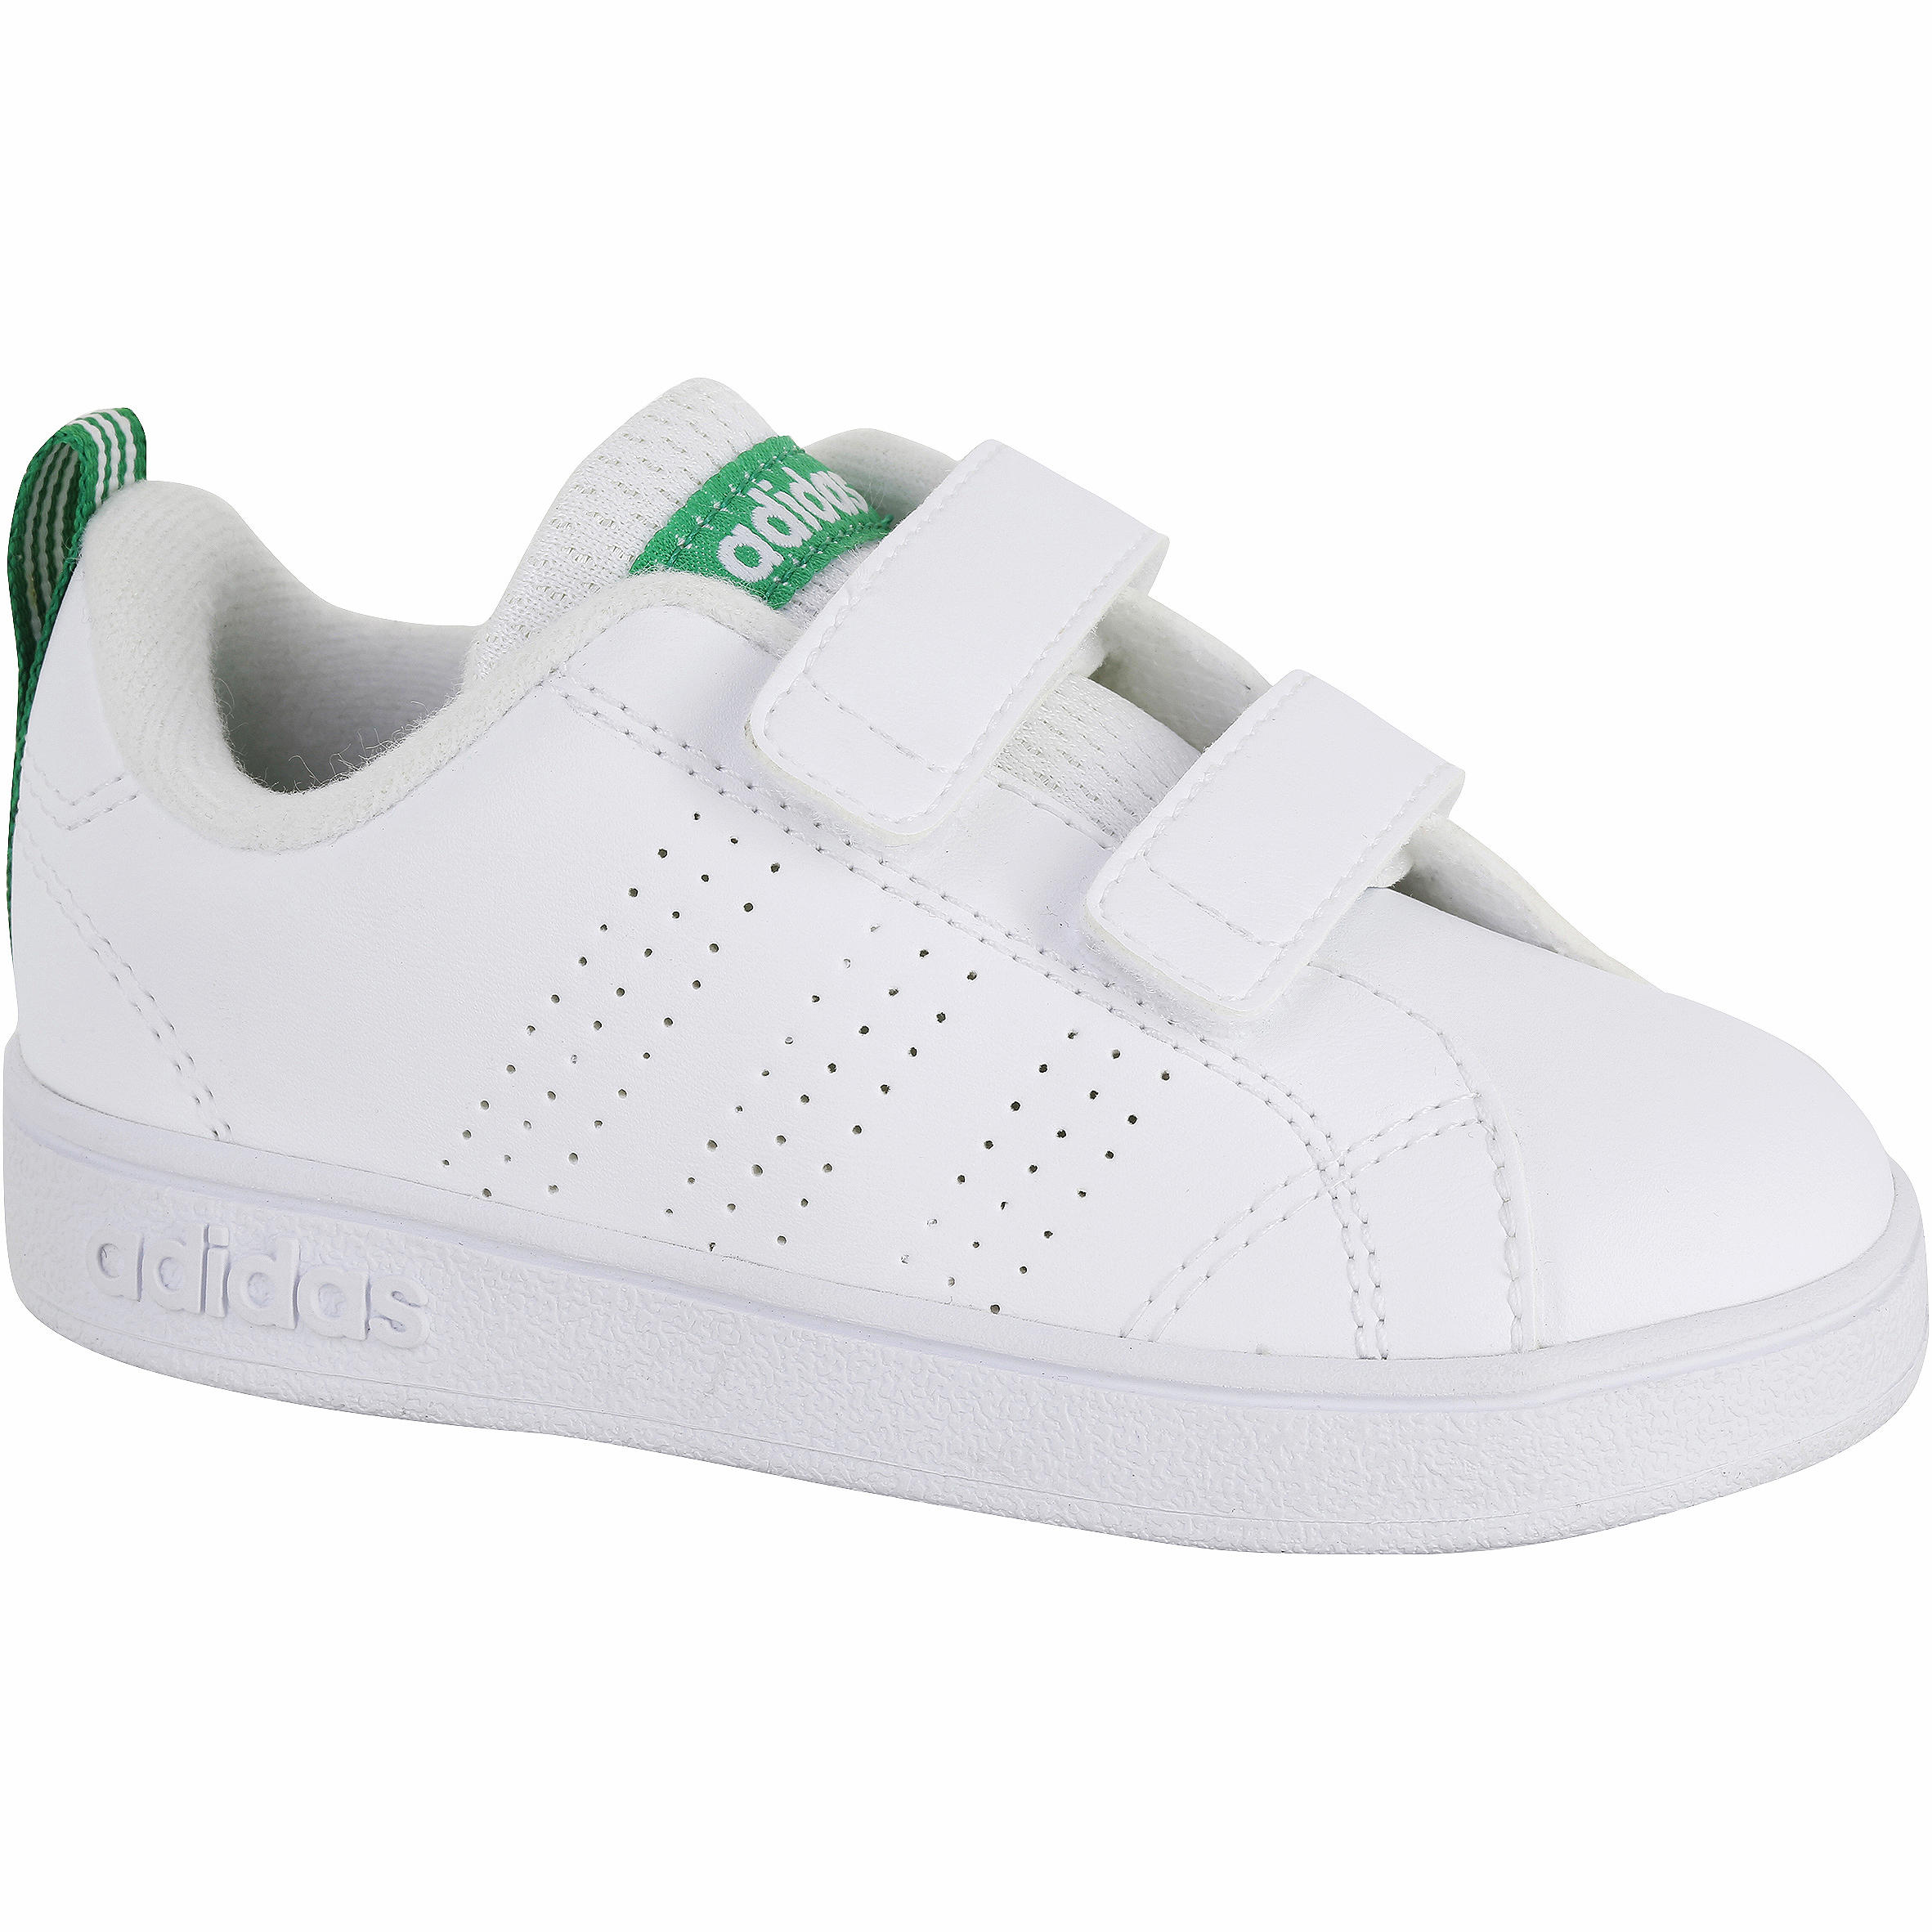 sneakers adidas VS Advantage Clean CMF Inf